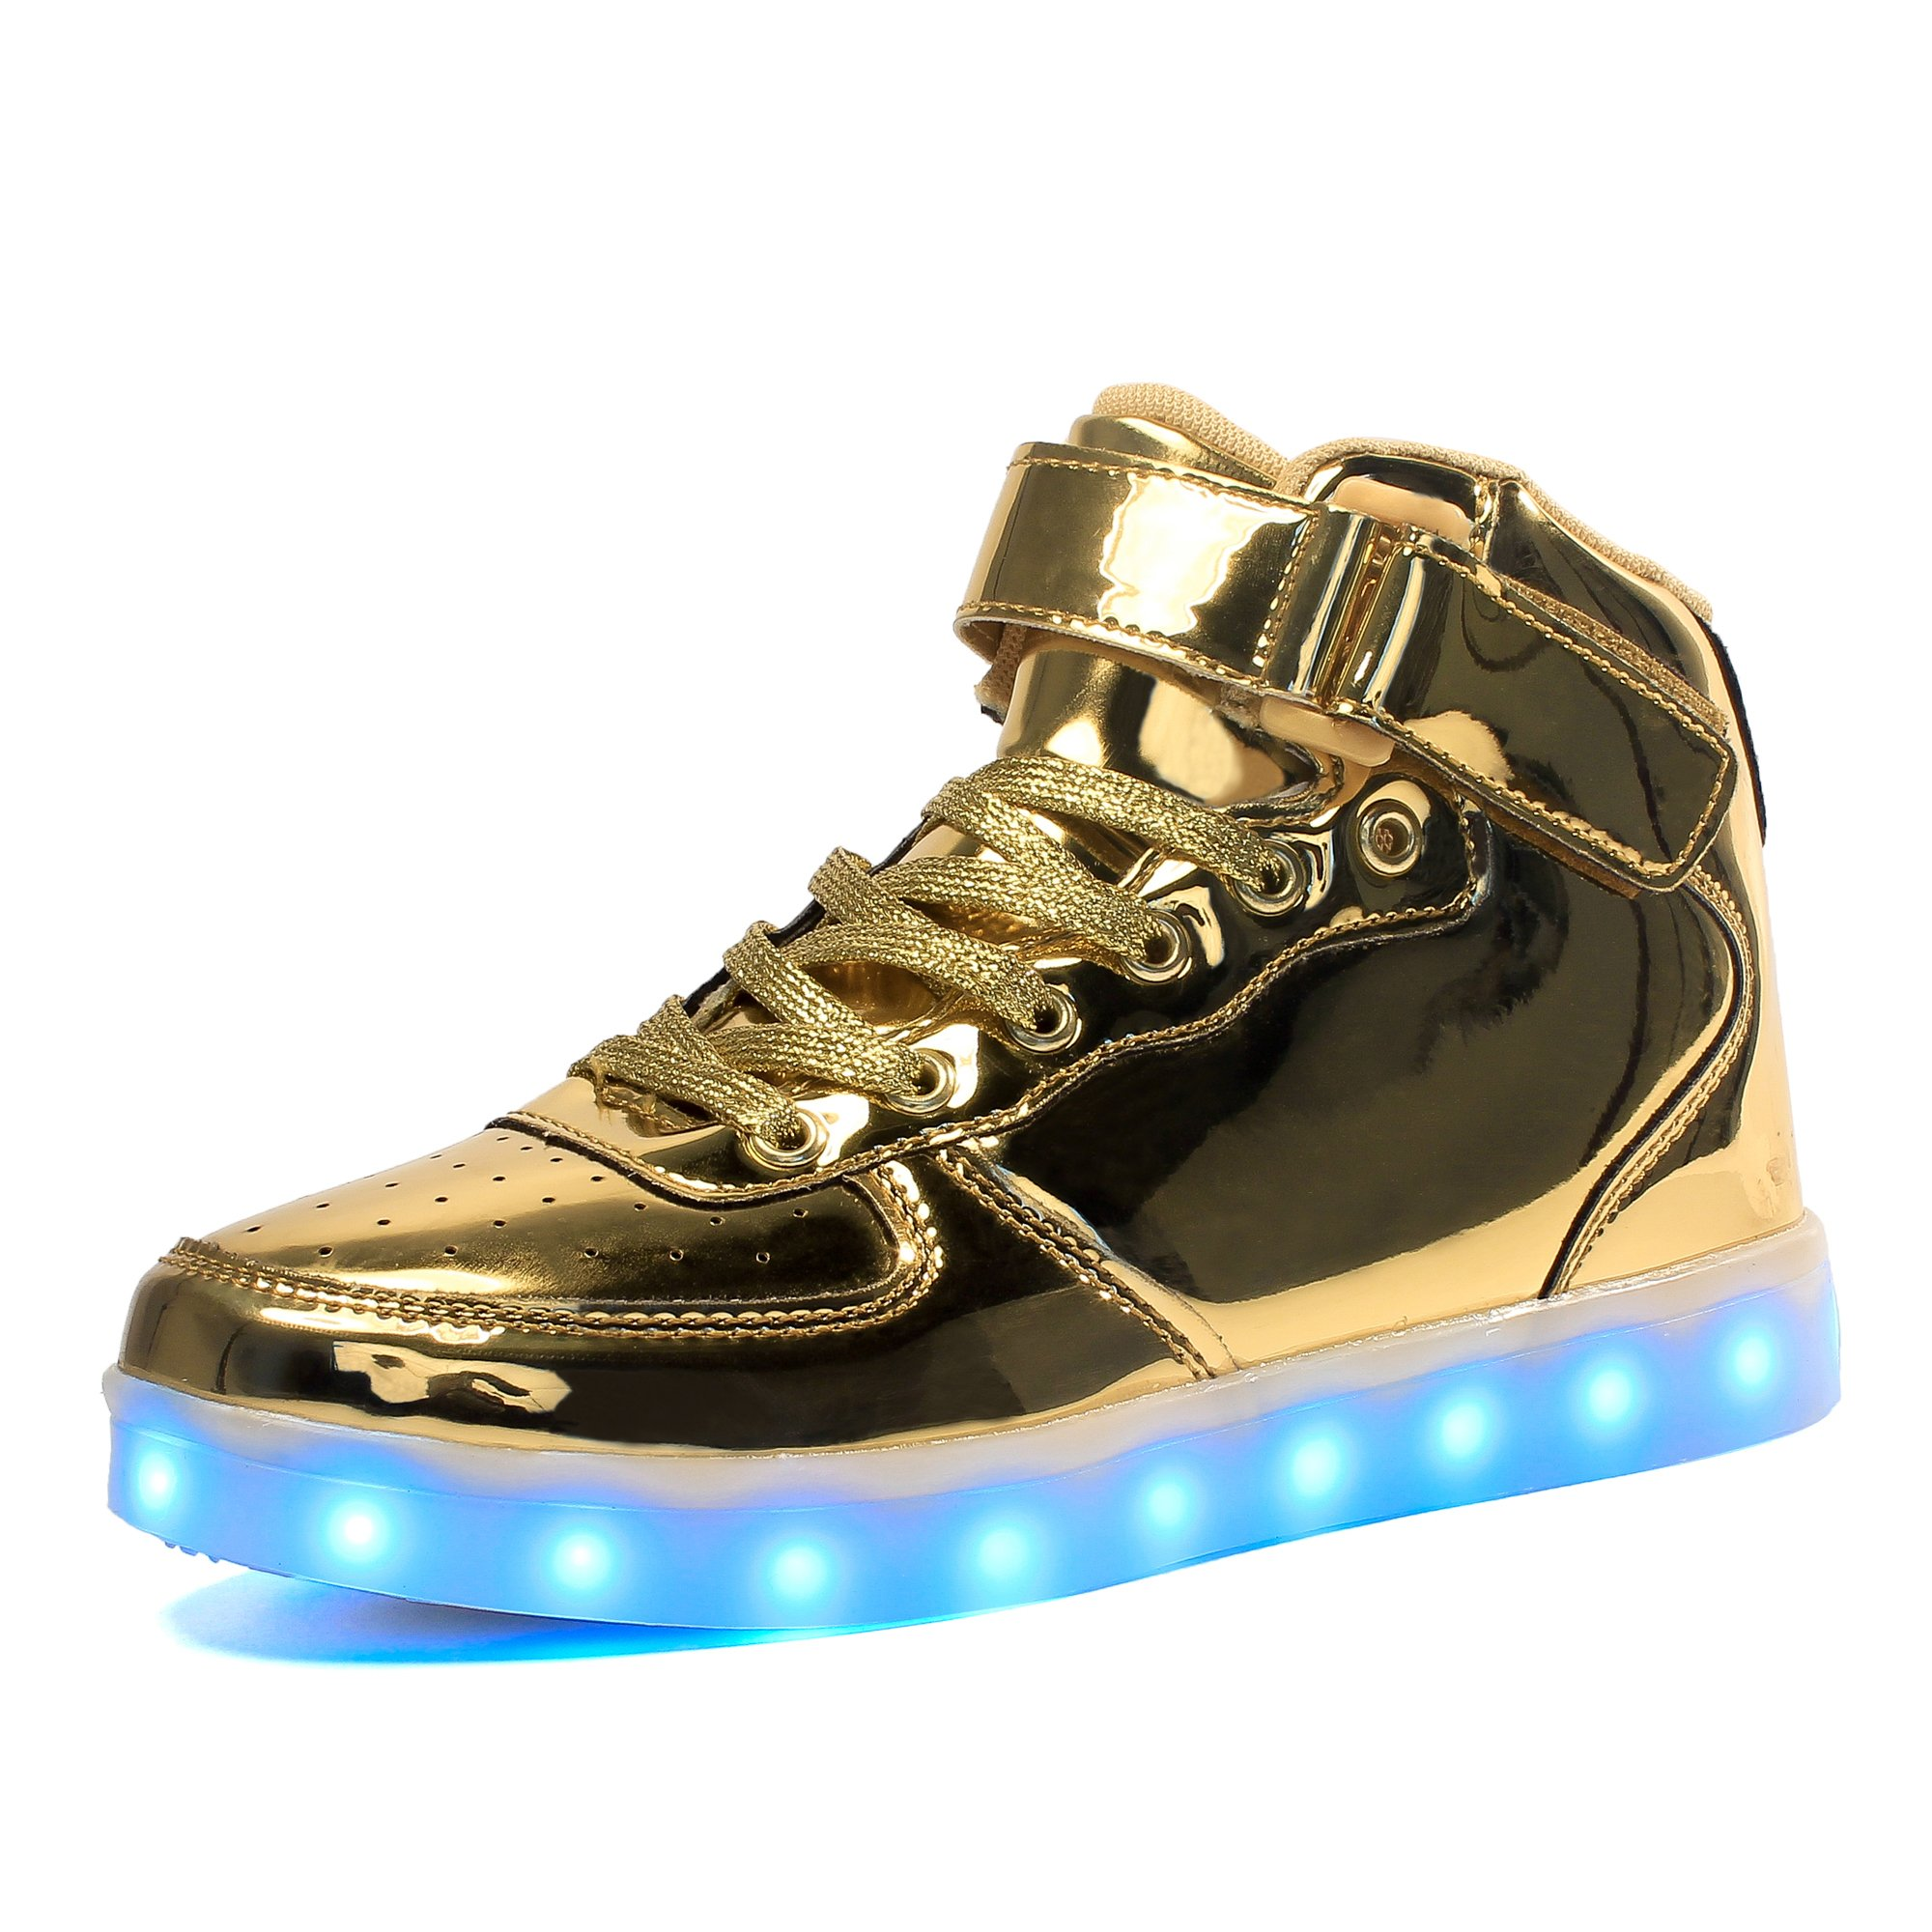 Maniamixx Kids Led Light up Shoes Flashing Sneakers High-top USB Charging Shoes for Boys and Girls(Gold,US12.5/CN31) by Maniamixx